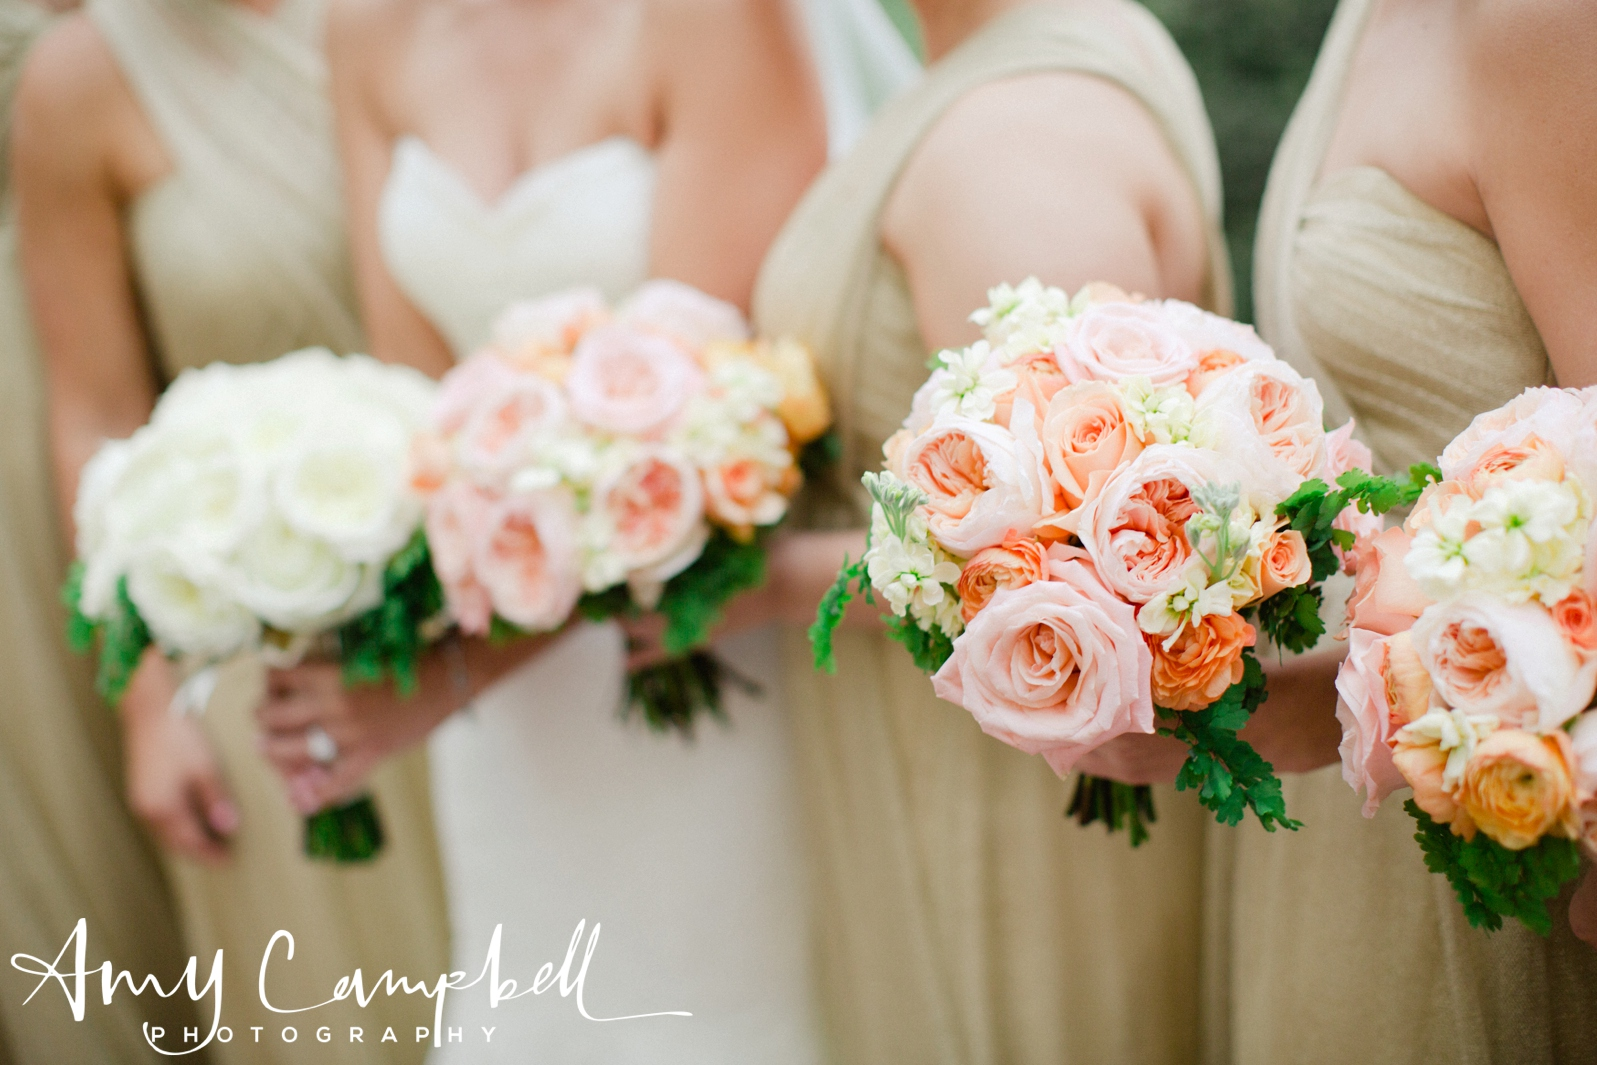 chelseamike_wedss_pics_amycampbellphotography_026.jpg